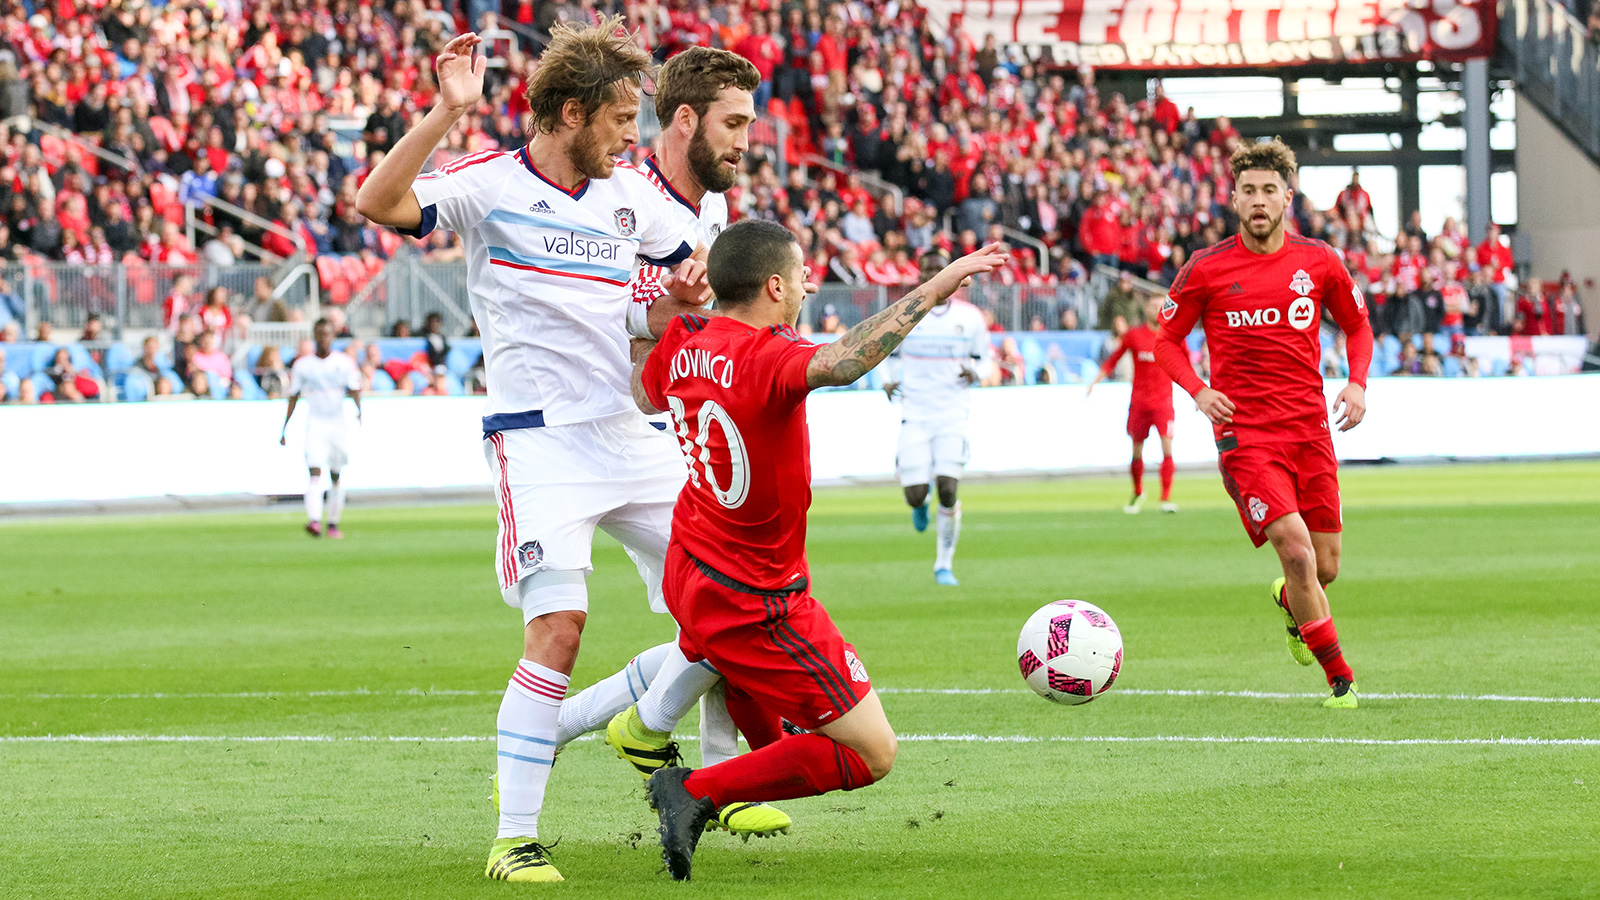 Giovinco being challenged to the ground part one.